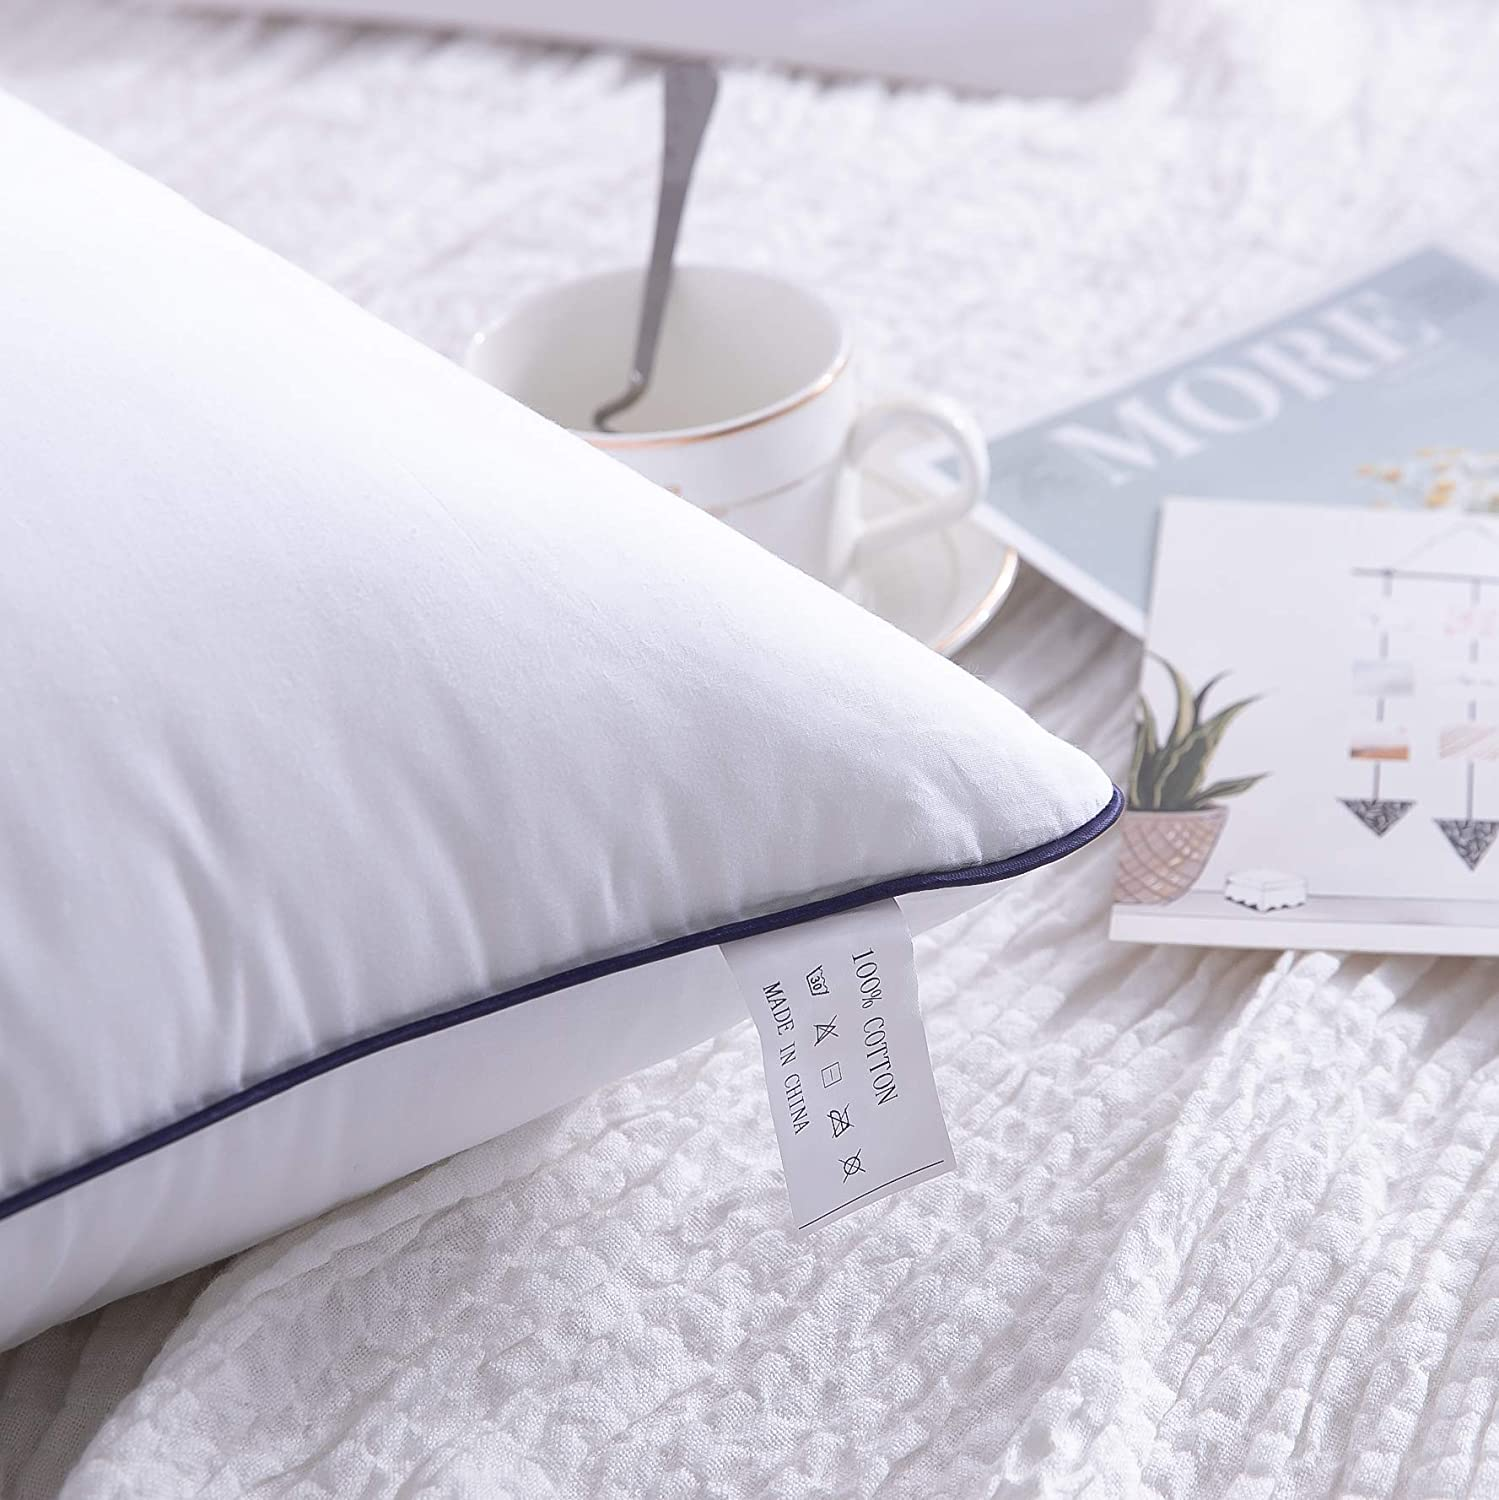 Hypoallergenic and Breathable White, Queen AYASW-Cotton Pillows Bed Pillows Queen Set of 2 with Medium Softness